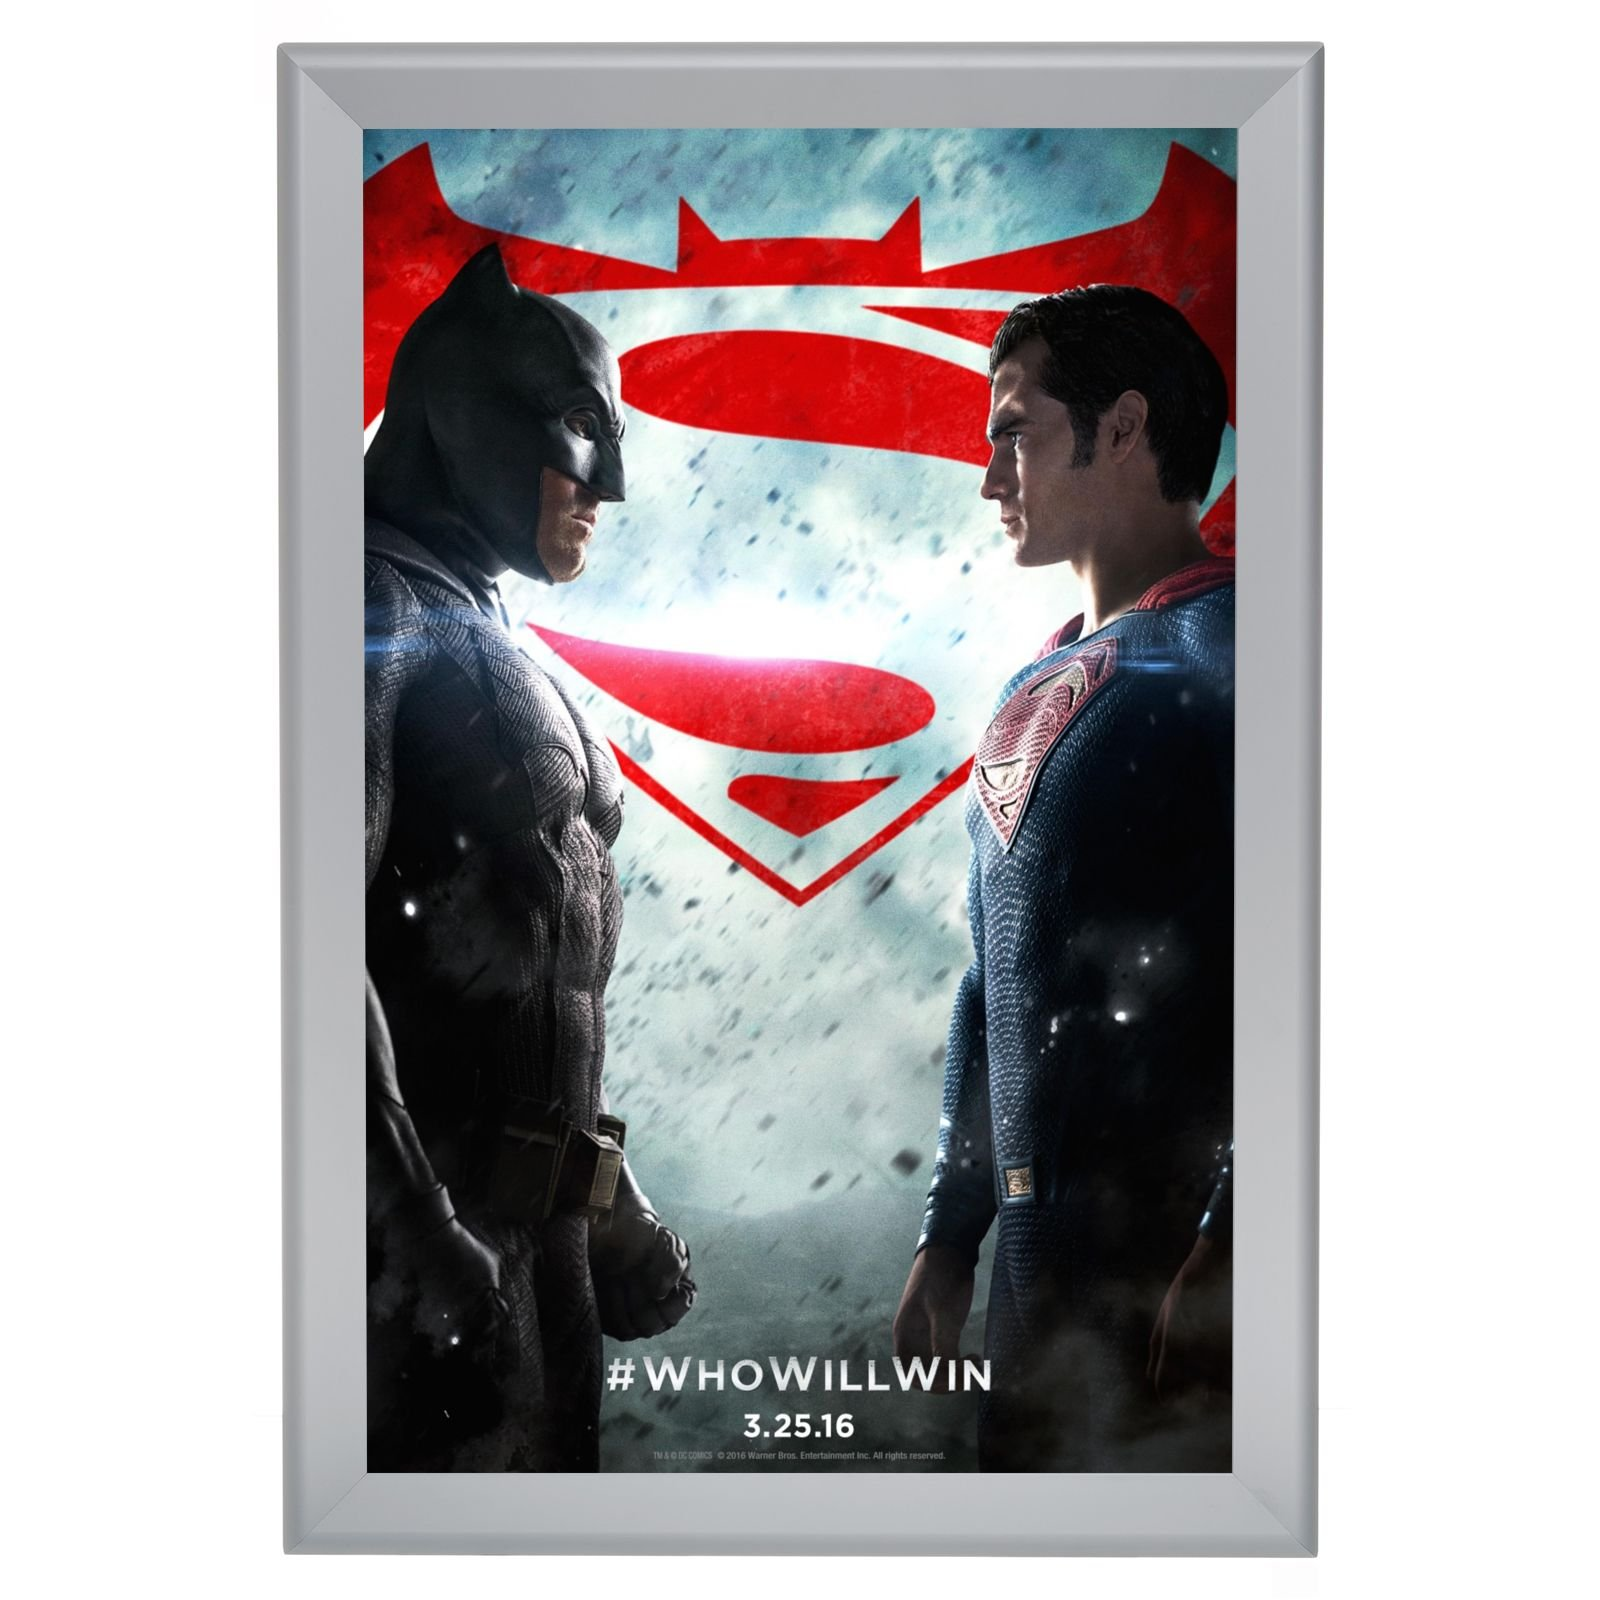 SnapeZo Movie Poster Frame 30x40 Inches, Silver 1.7'' Aluminum Profile, Front-Loading Snap Frame, Wall Mounting, Wide Series